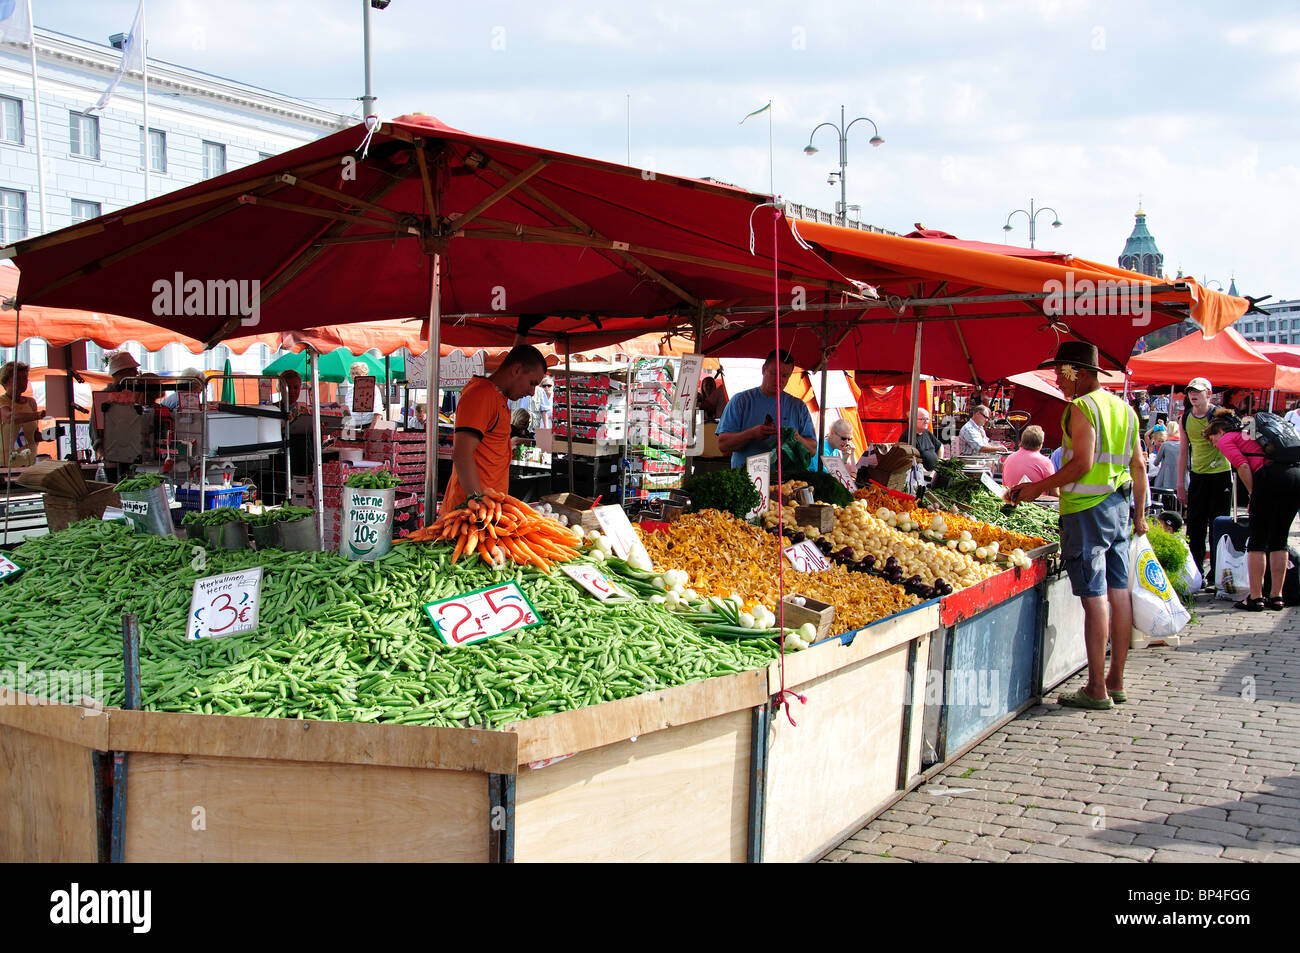 Fruit and vegetable stall, Outdoor market, Kauppatori ...